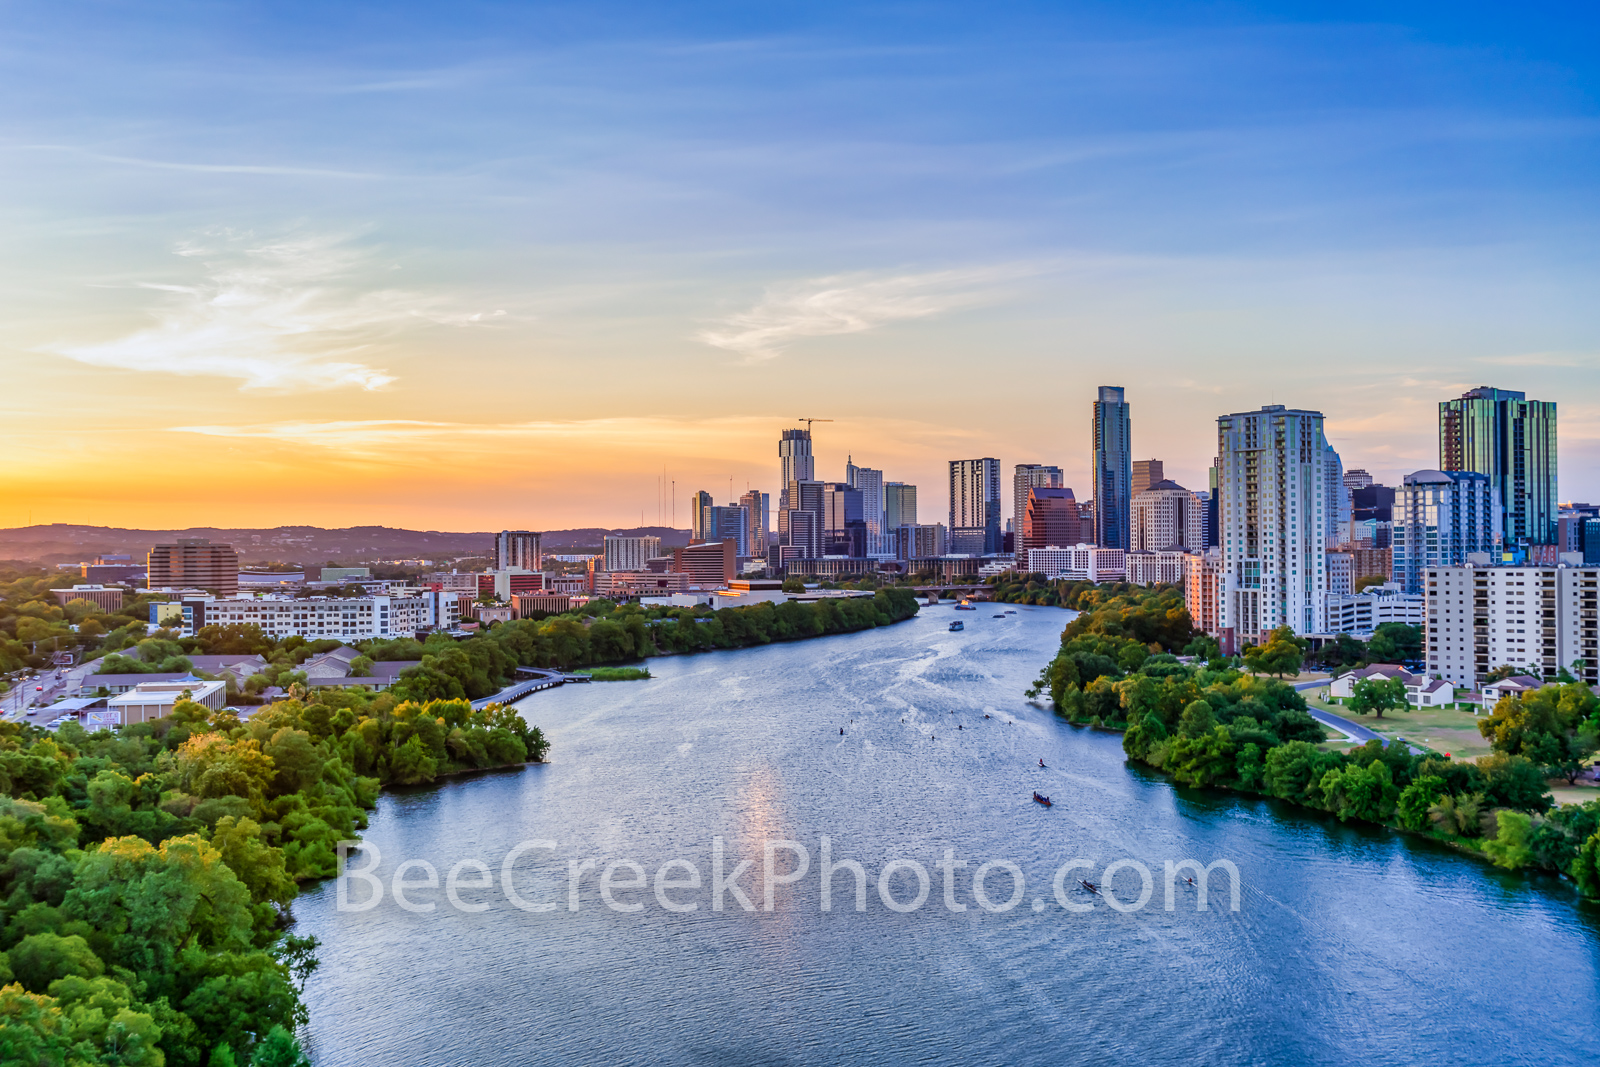 austin skyline aerial, austin skyline, aerial, drone, austin, night, twilight, dark, lady bird lake, high rise buildings, architecture, boardwalk lights, shoreline, lake, ih35, ut, erwin center, indep